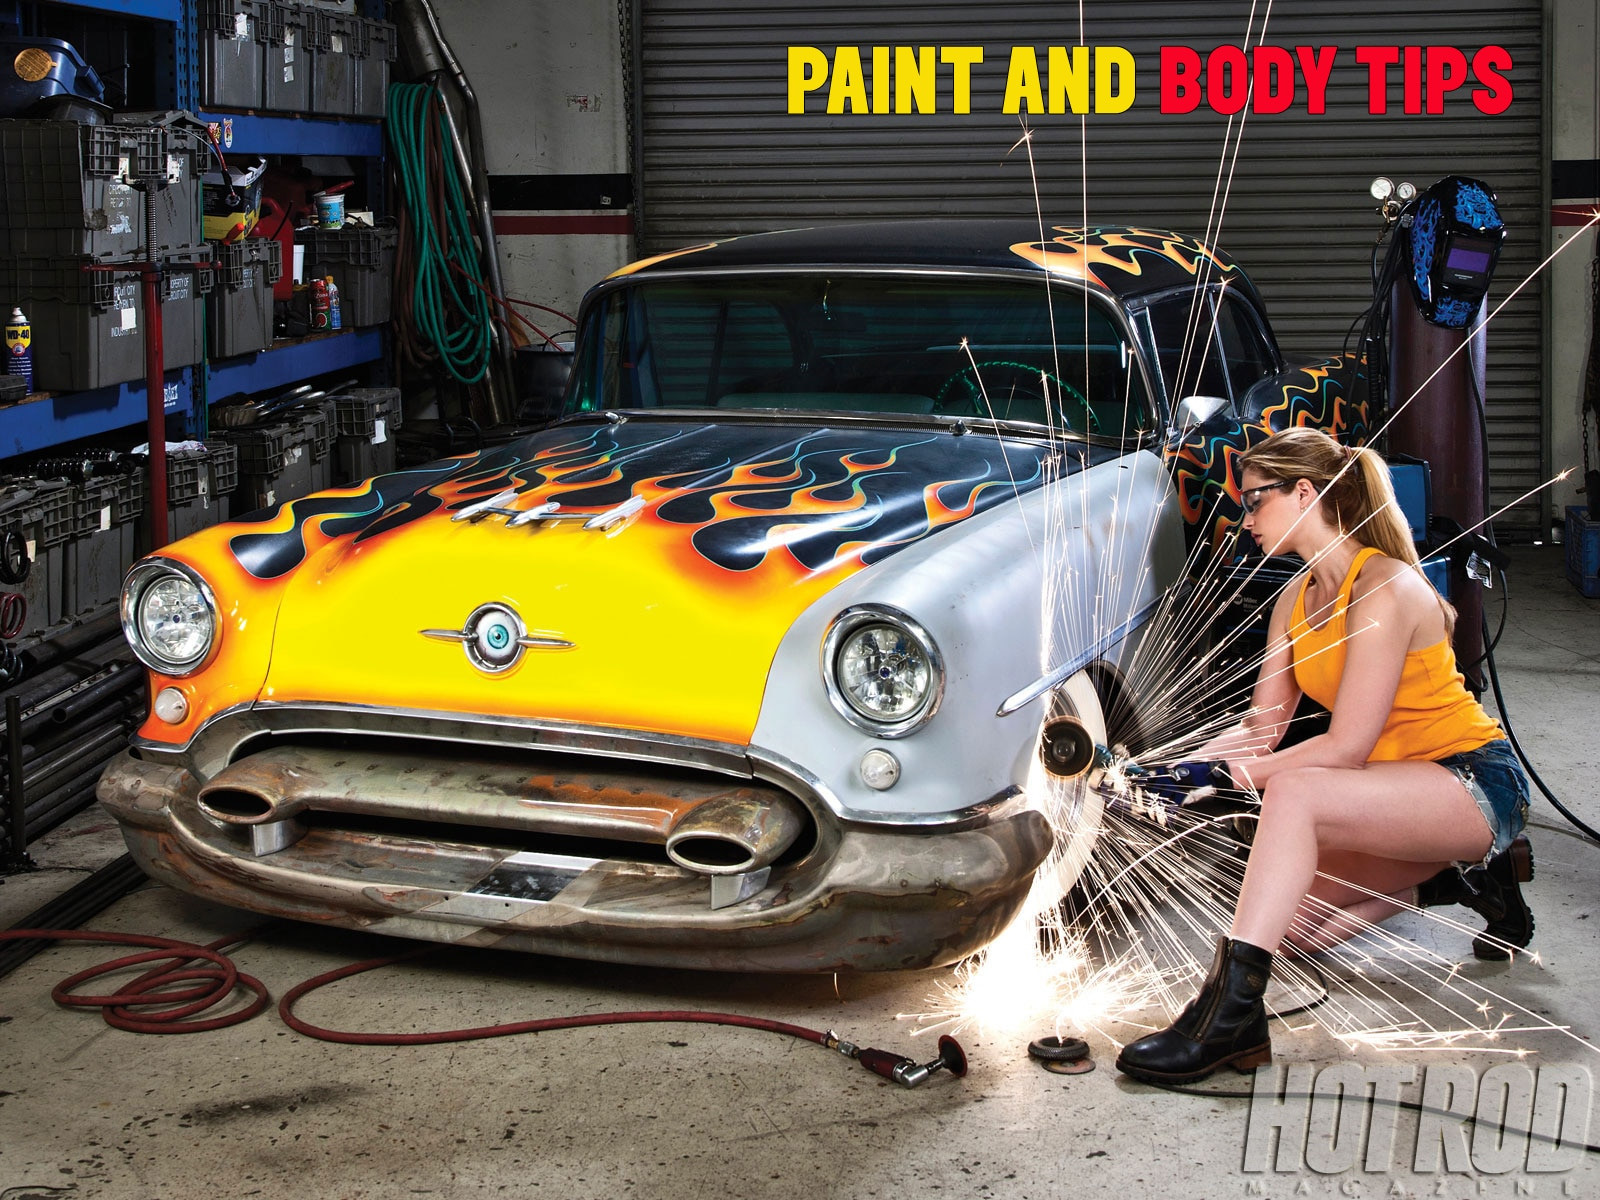 Best ideas about DIY Car Painting . Save or Pin D I Y Auto Bodywork Trick Stuff You Can Do To Your Car Now.